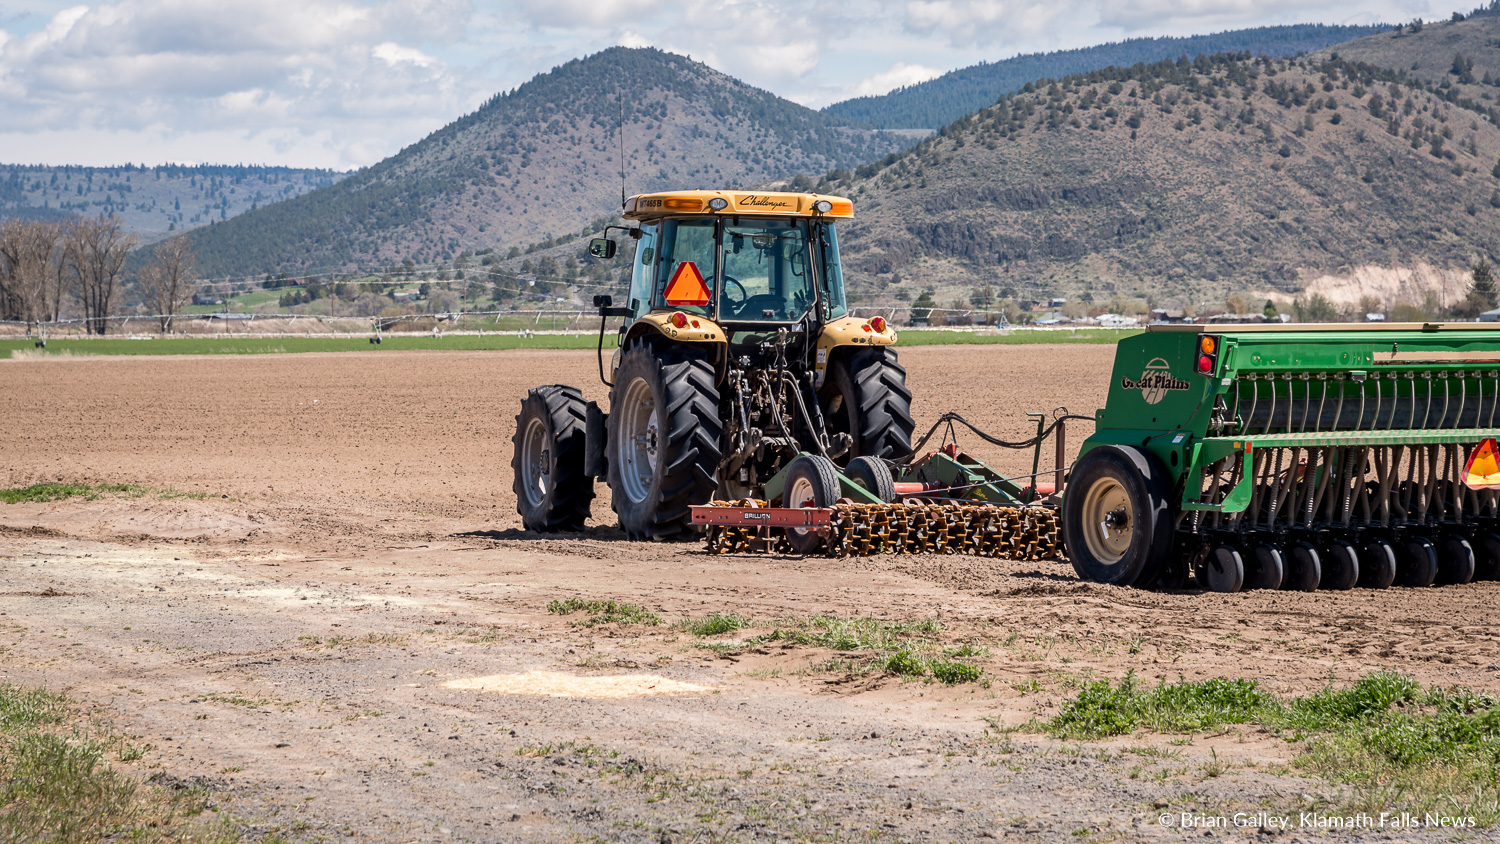 File Photo:A taractor sits idle in a dry field, Klamath County, Ore. (Brian Gailey)